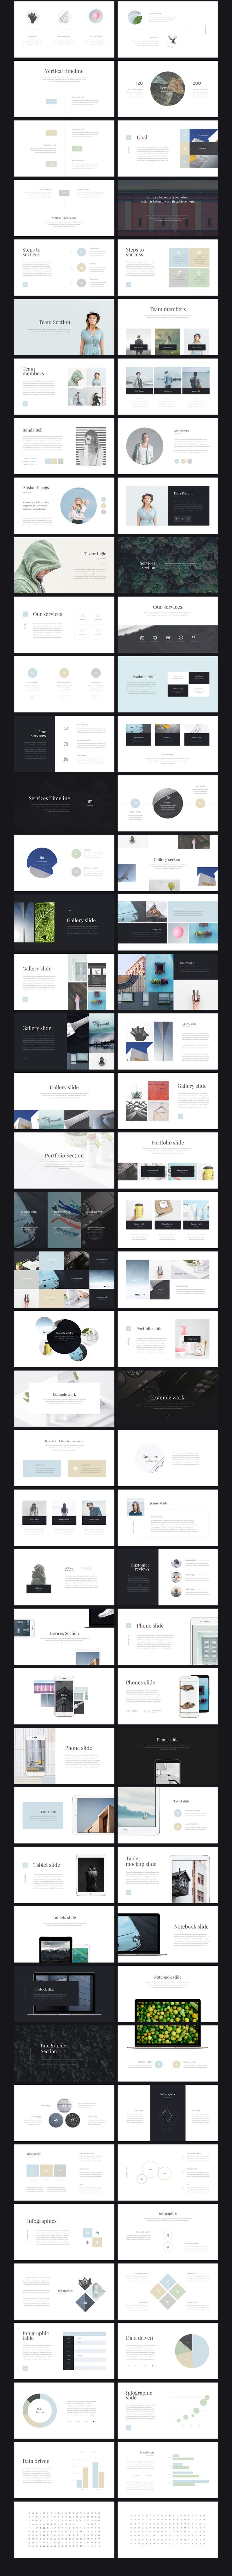 It is clean and stylish presentation made in modern style. It focuses on easy submission of information. This presentation suitable for…